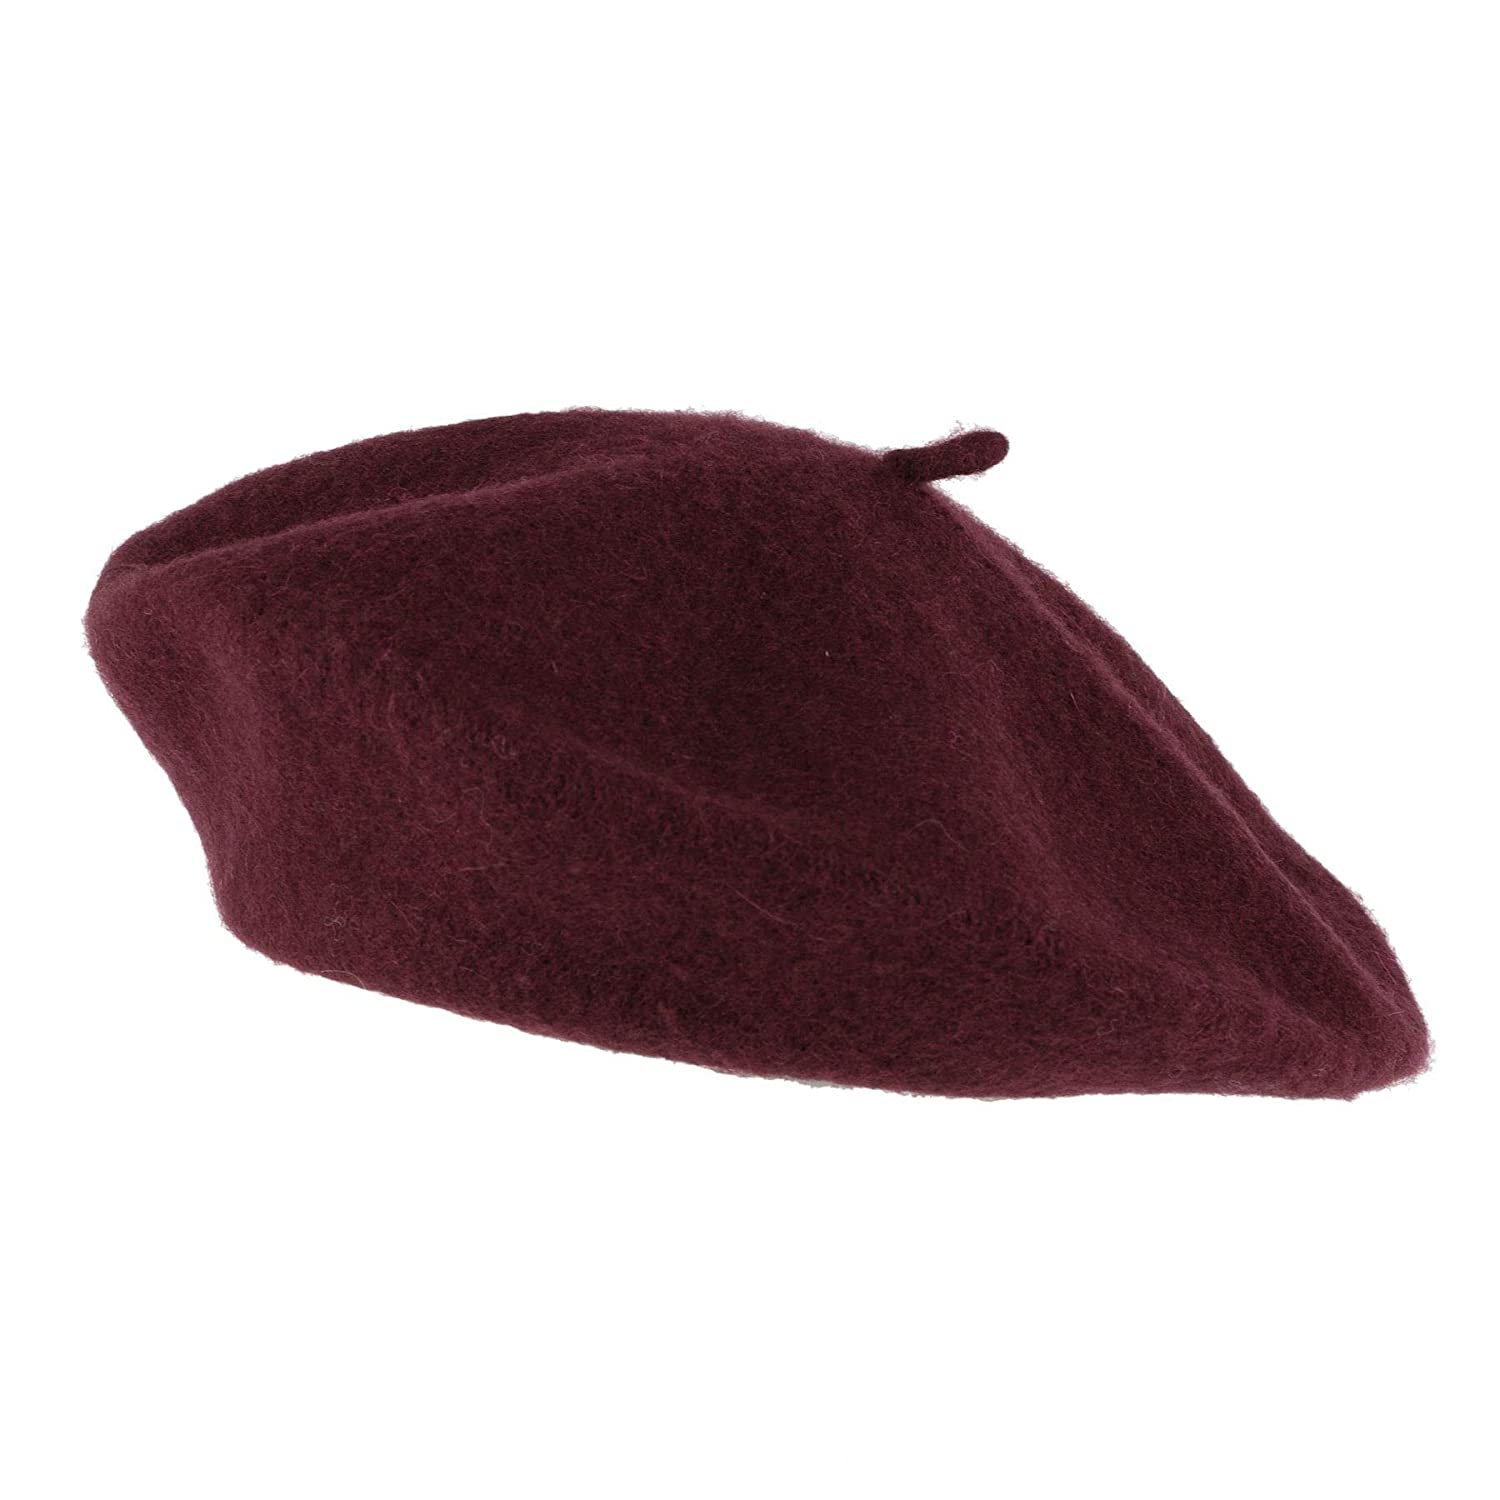 Hat To Socks Wool Blend French Beret for Men and Women in Plain Colours